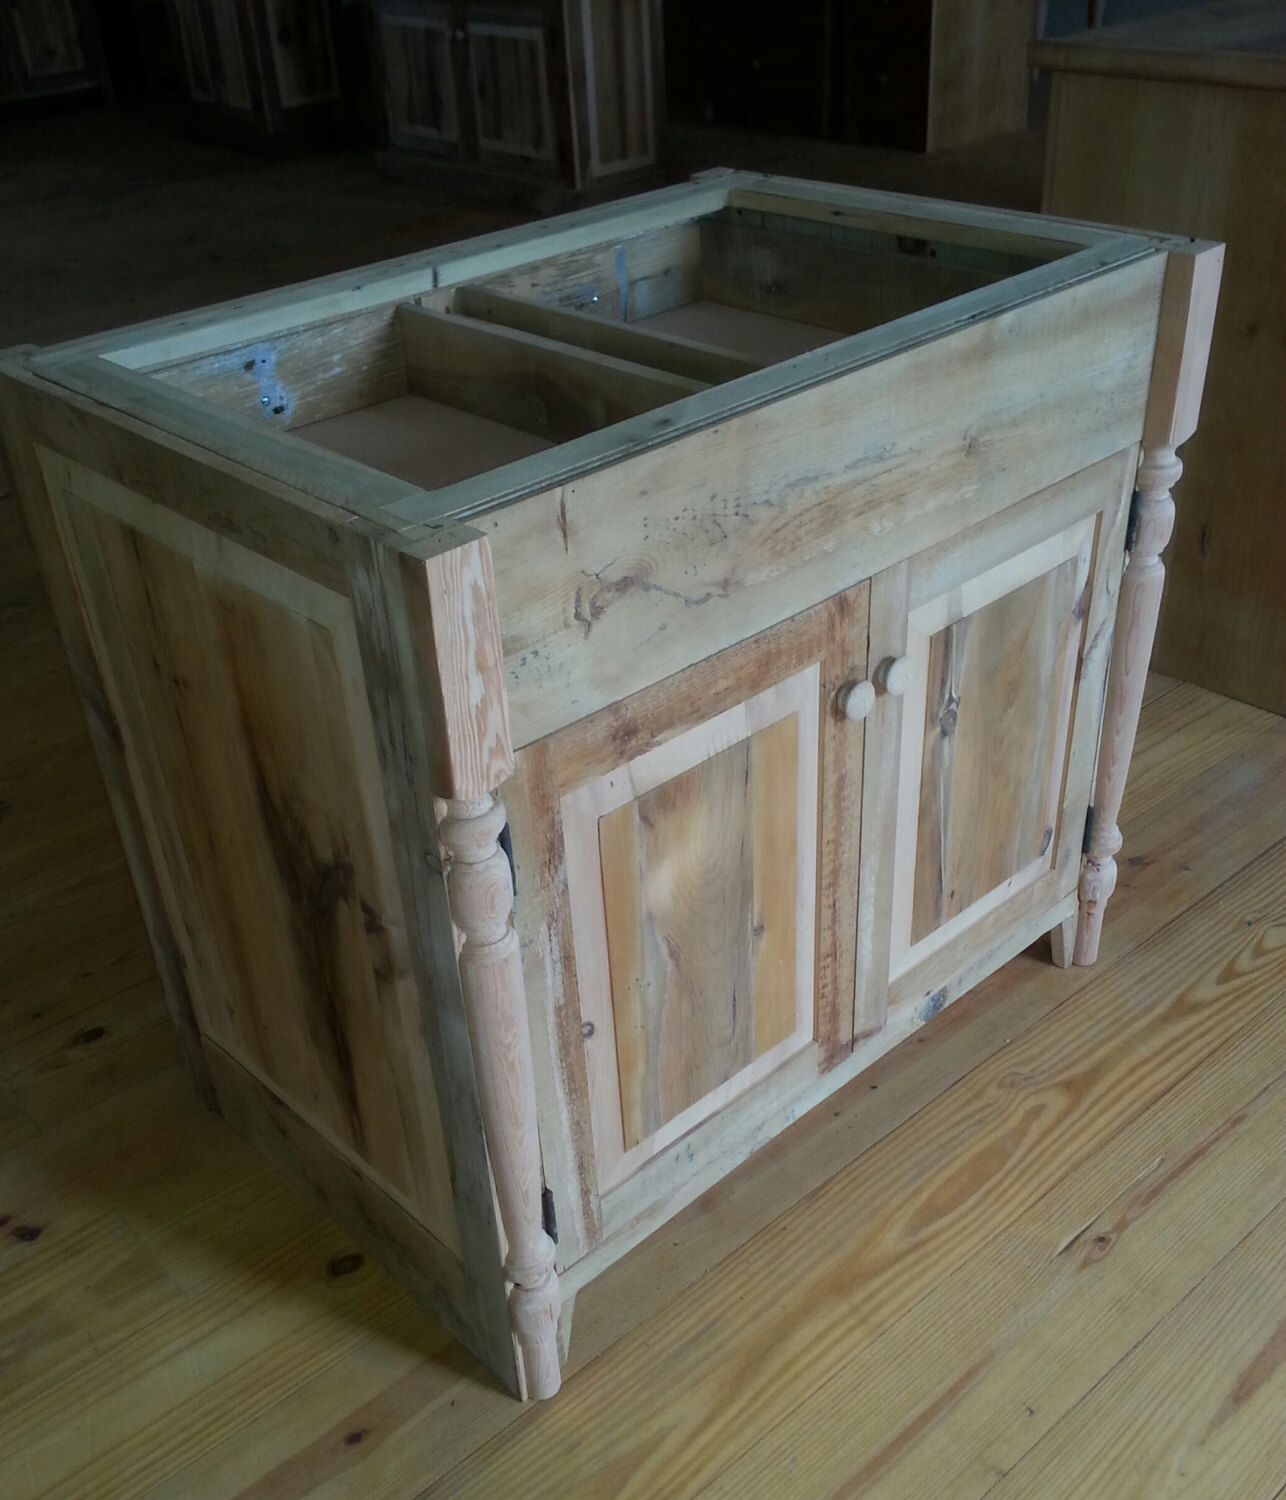 Reclaimed Barn Wood Kitchen Island With Drawers cabinet Slide Out